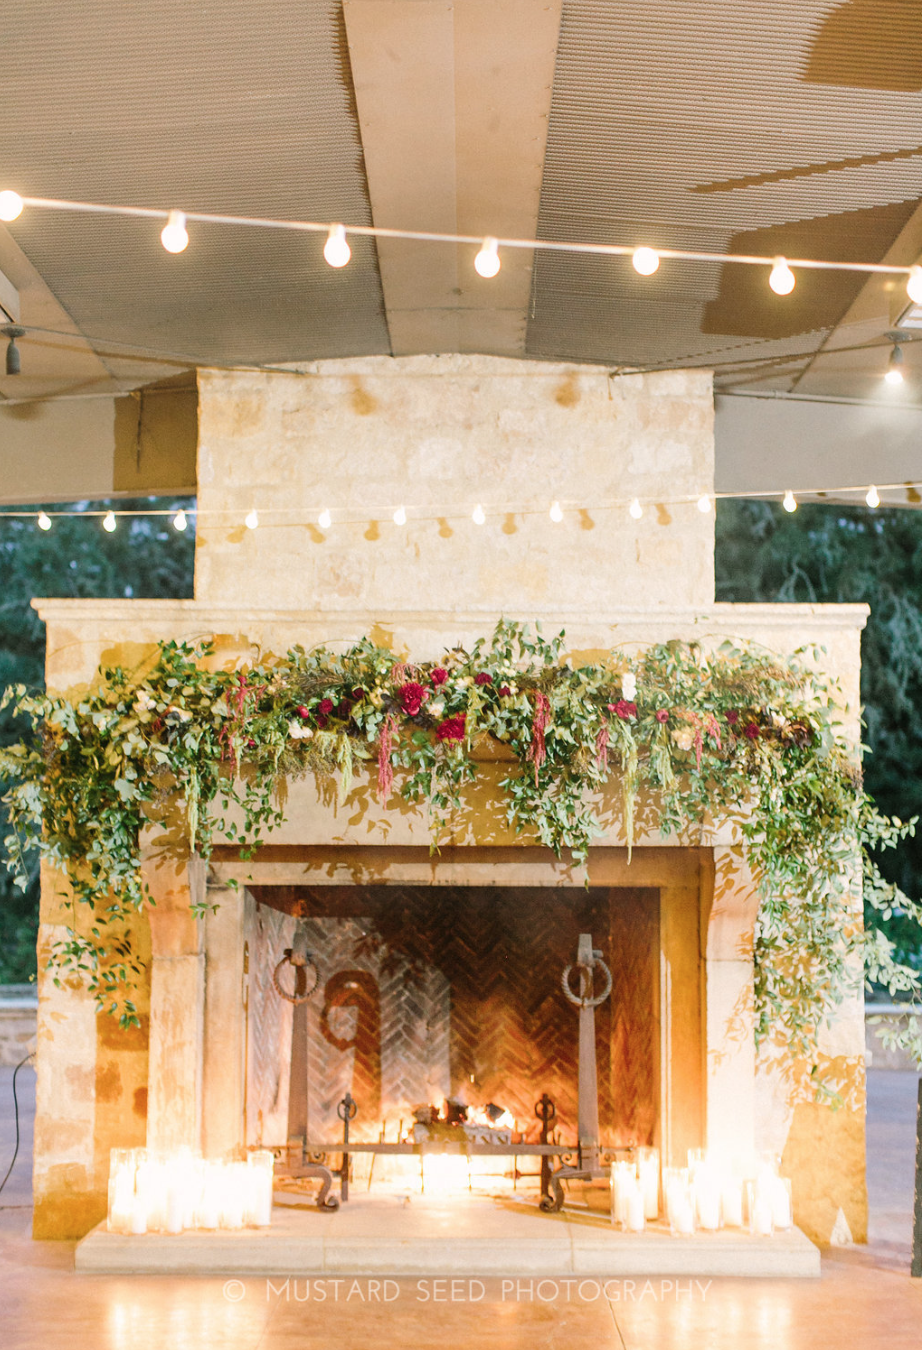 Fireplace with hanging greenery and candles by Maxit Flower Design in Houston, TX.